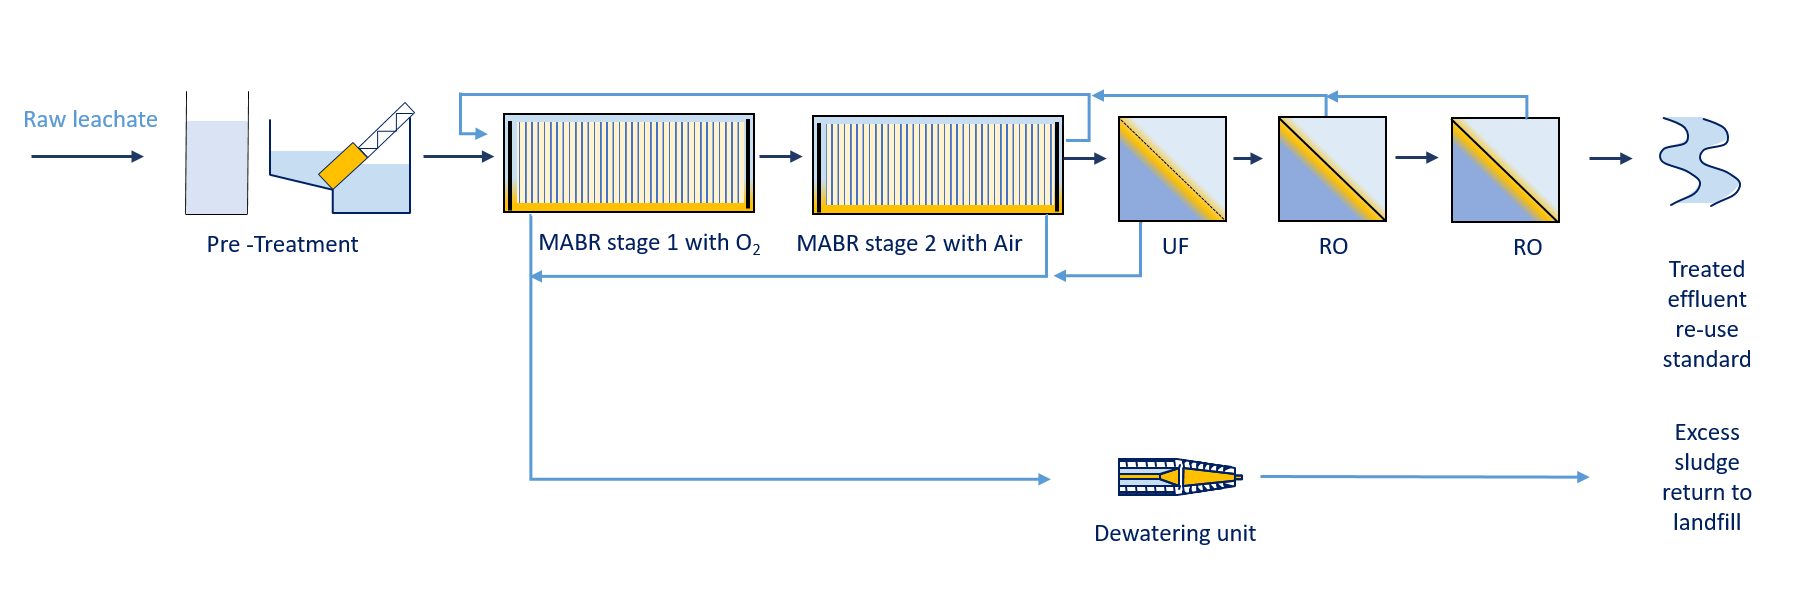 Leachate Treatment (Process TRAIN) FOR RE-USE STANDARD